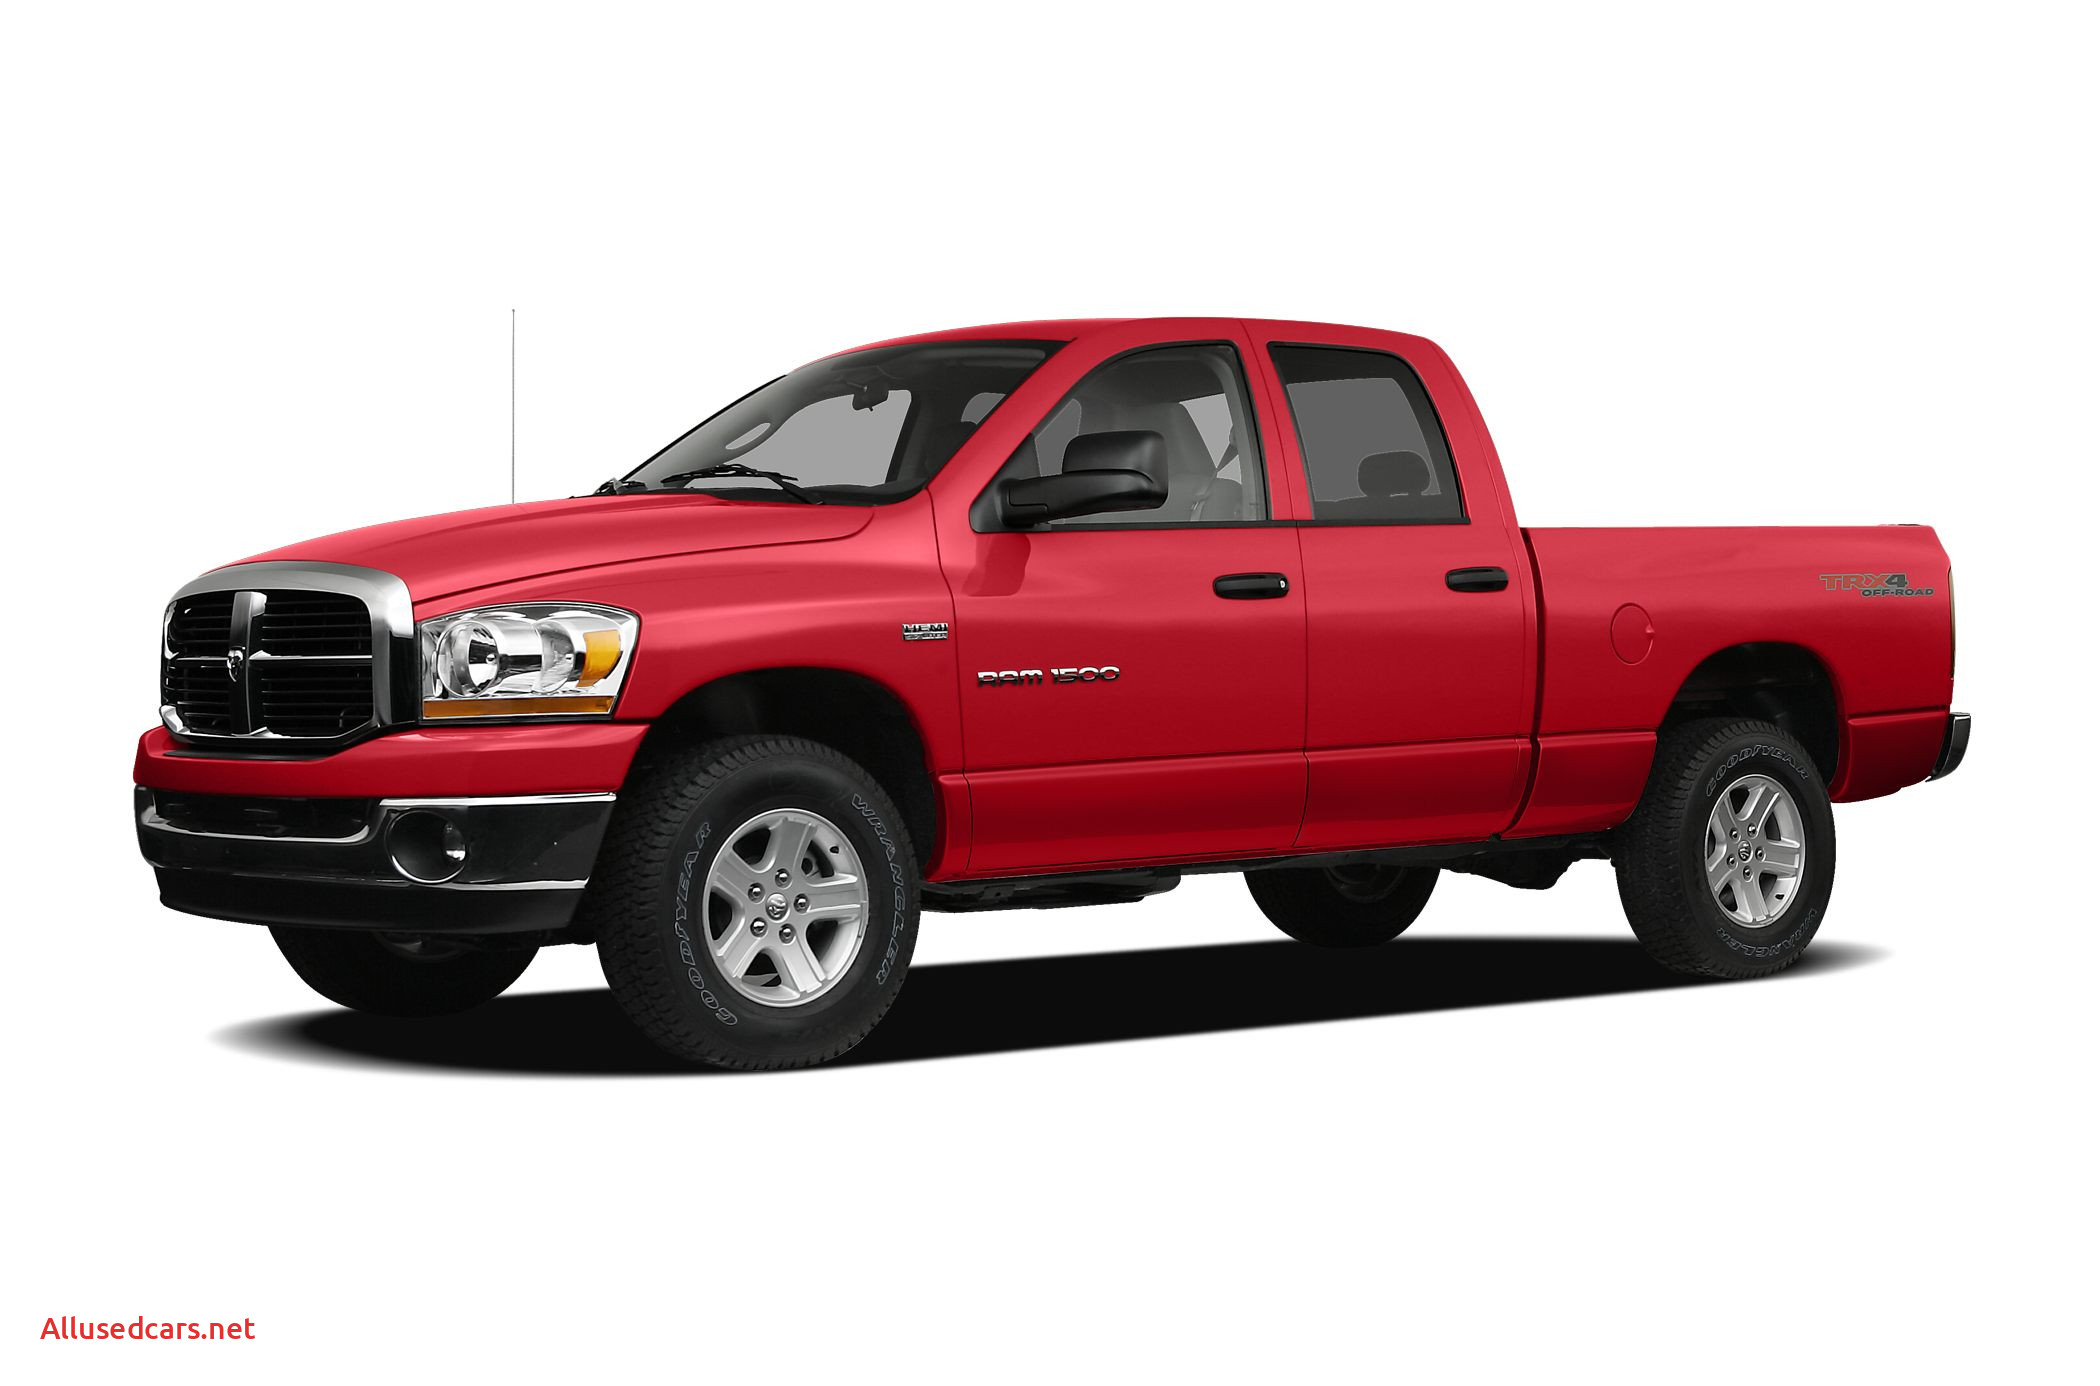 2003 Dodge Ram 1500 Length Beautiful 2008 Dodge Ram 1500 St Sxt 4x2 Quad Cab 140 5 In Wb Specs and Prices